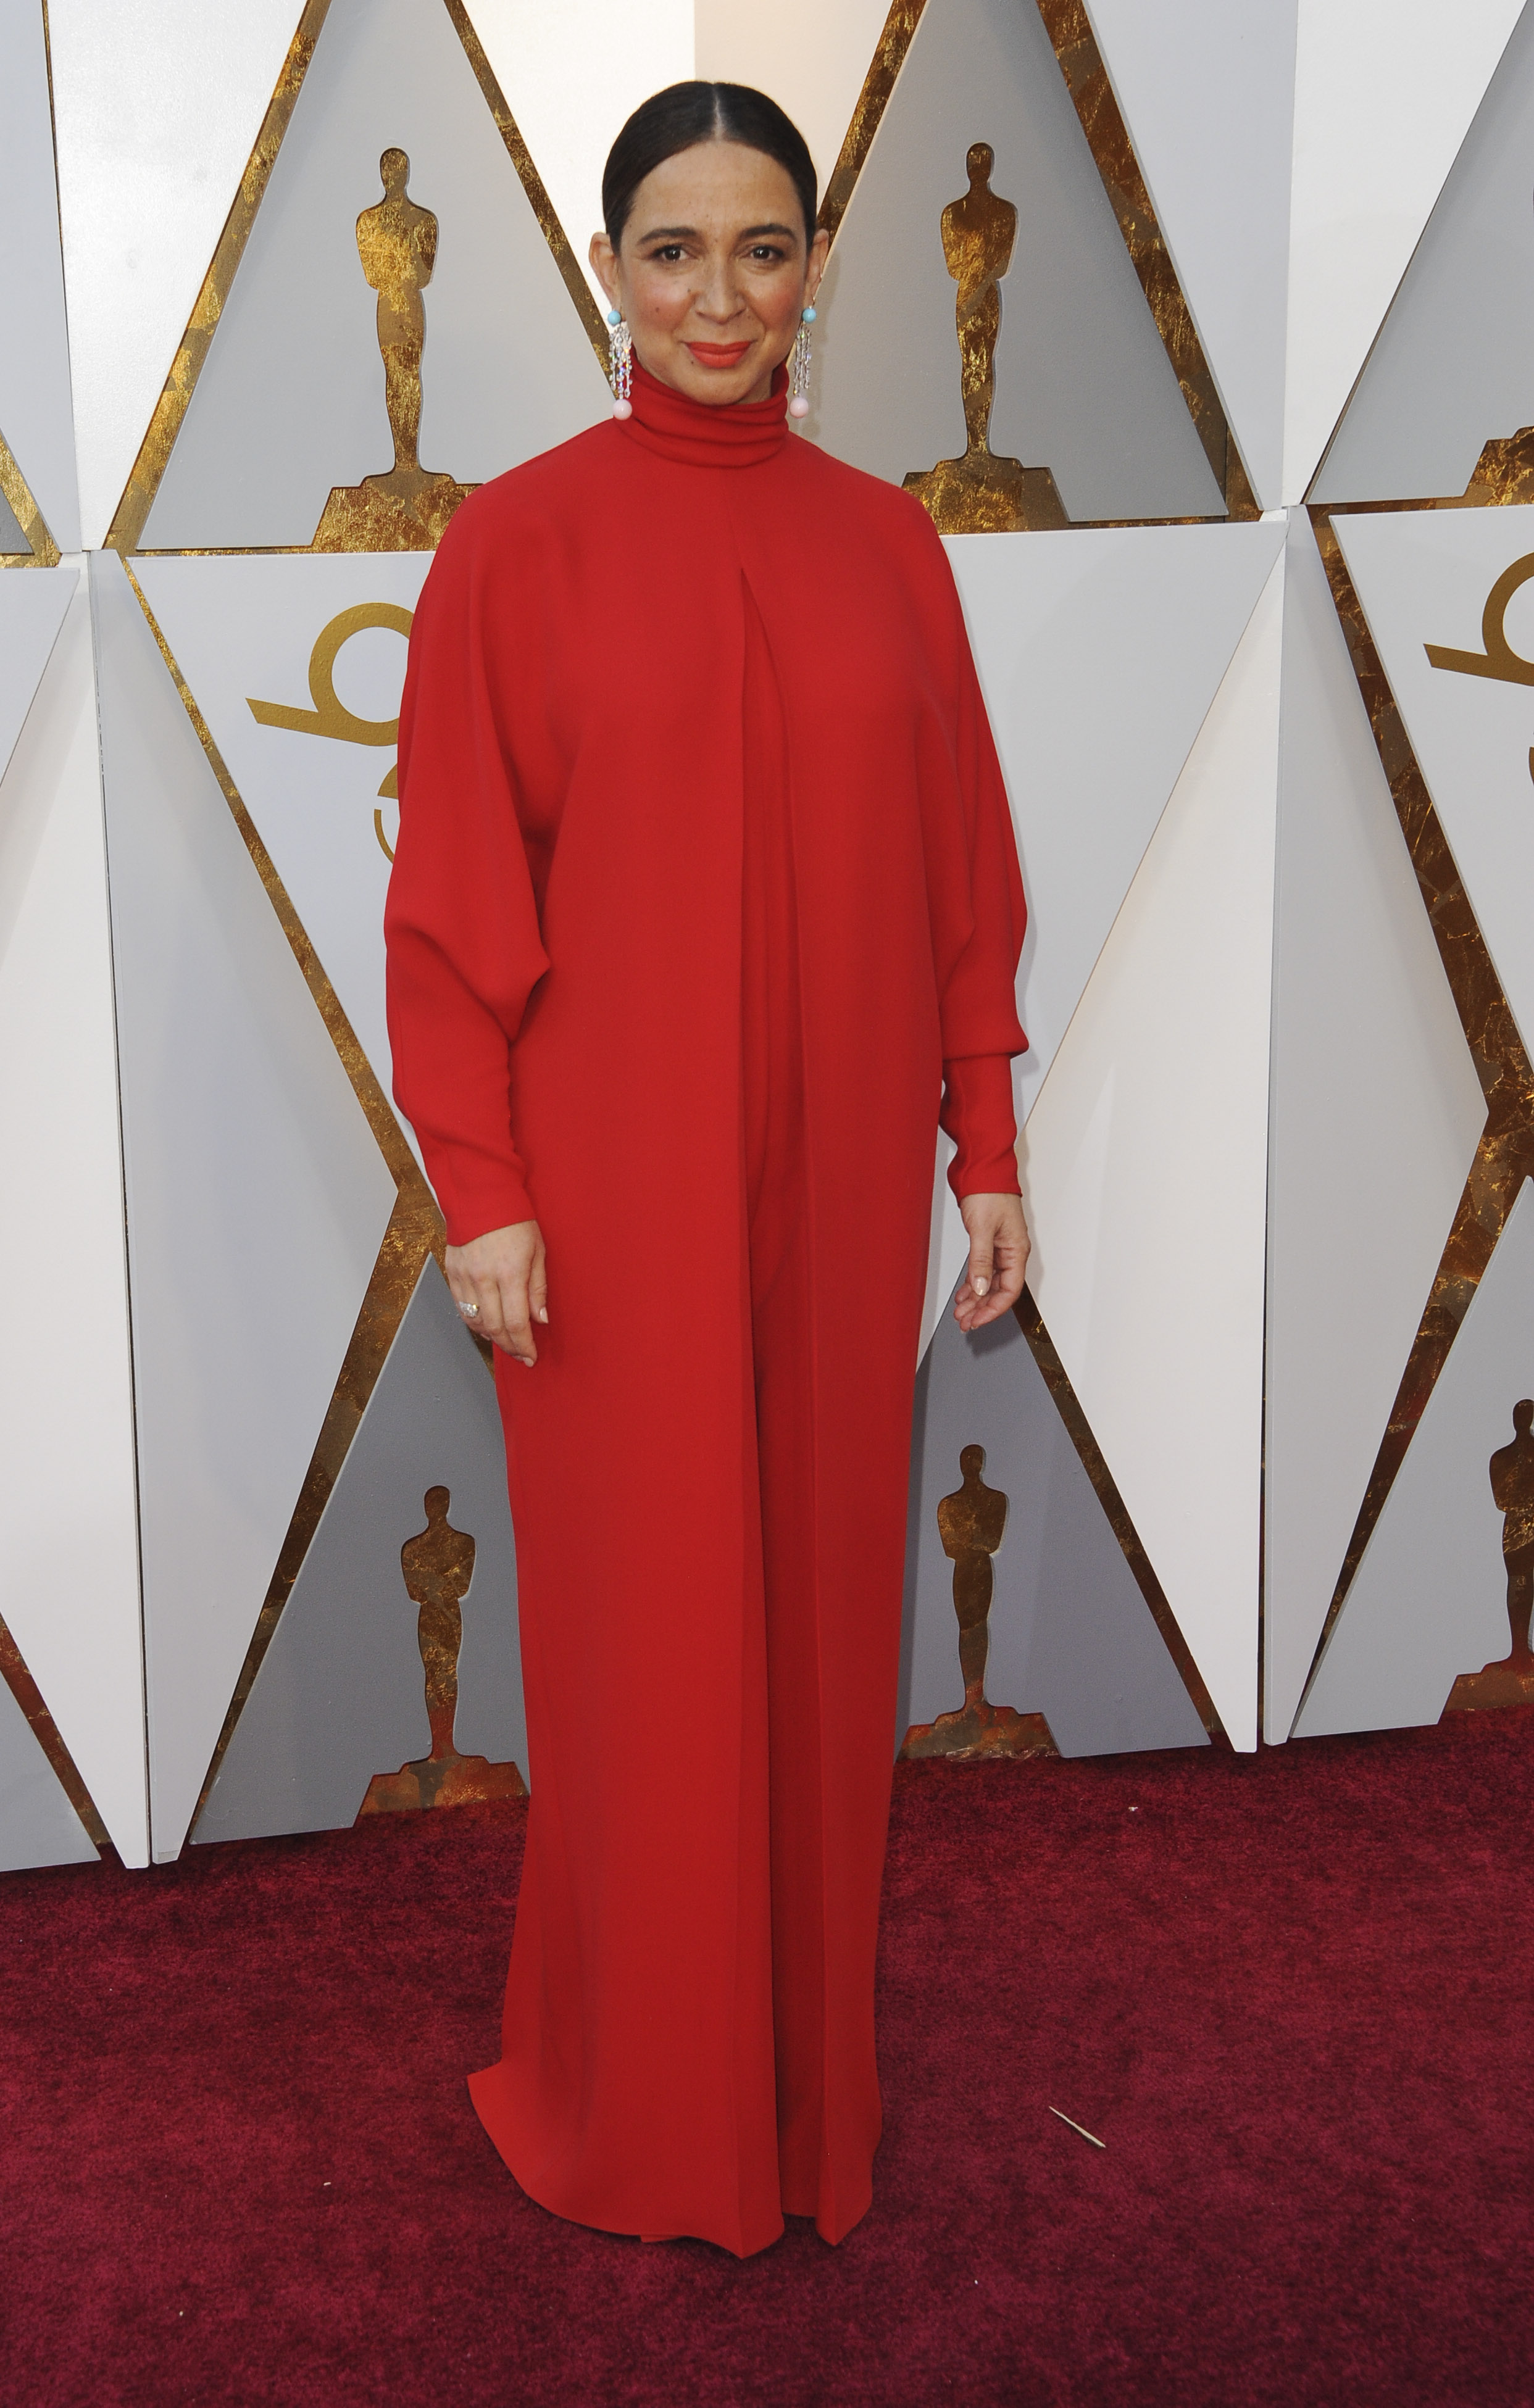 {&amp;nbsp;}Maya Rudolph arrives at the 90th Annual Academy Awards (Oscars) held at the Dolby Theater in Hollywood, California. (Image: Apega/WENN.com)<p></p>